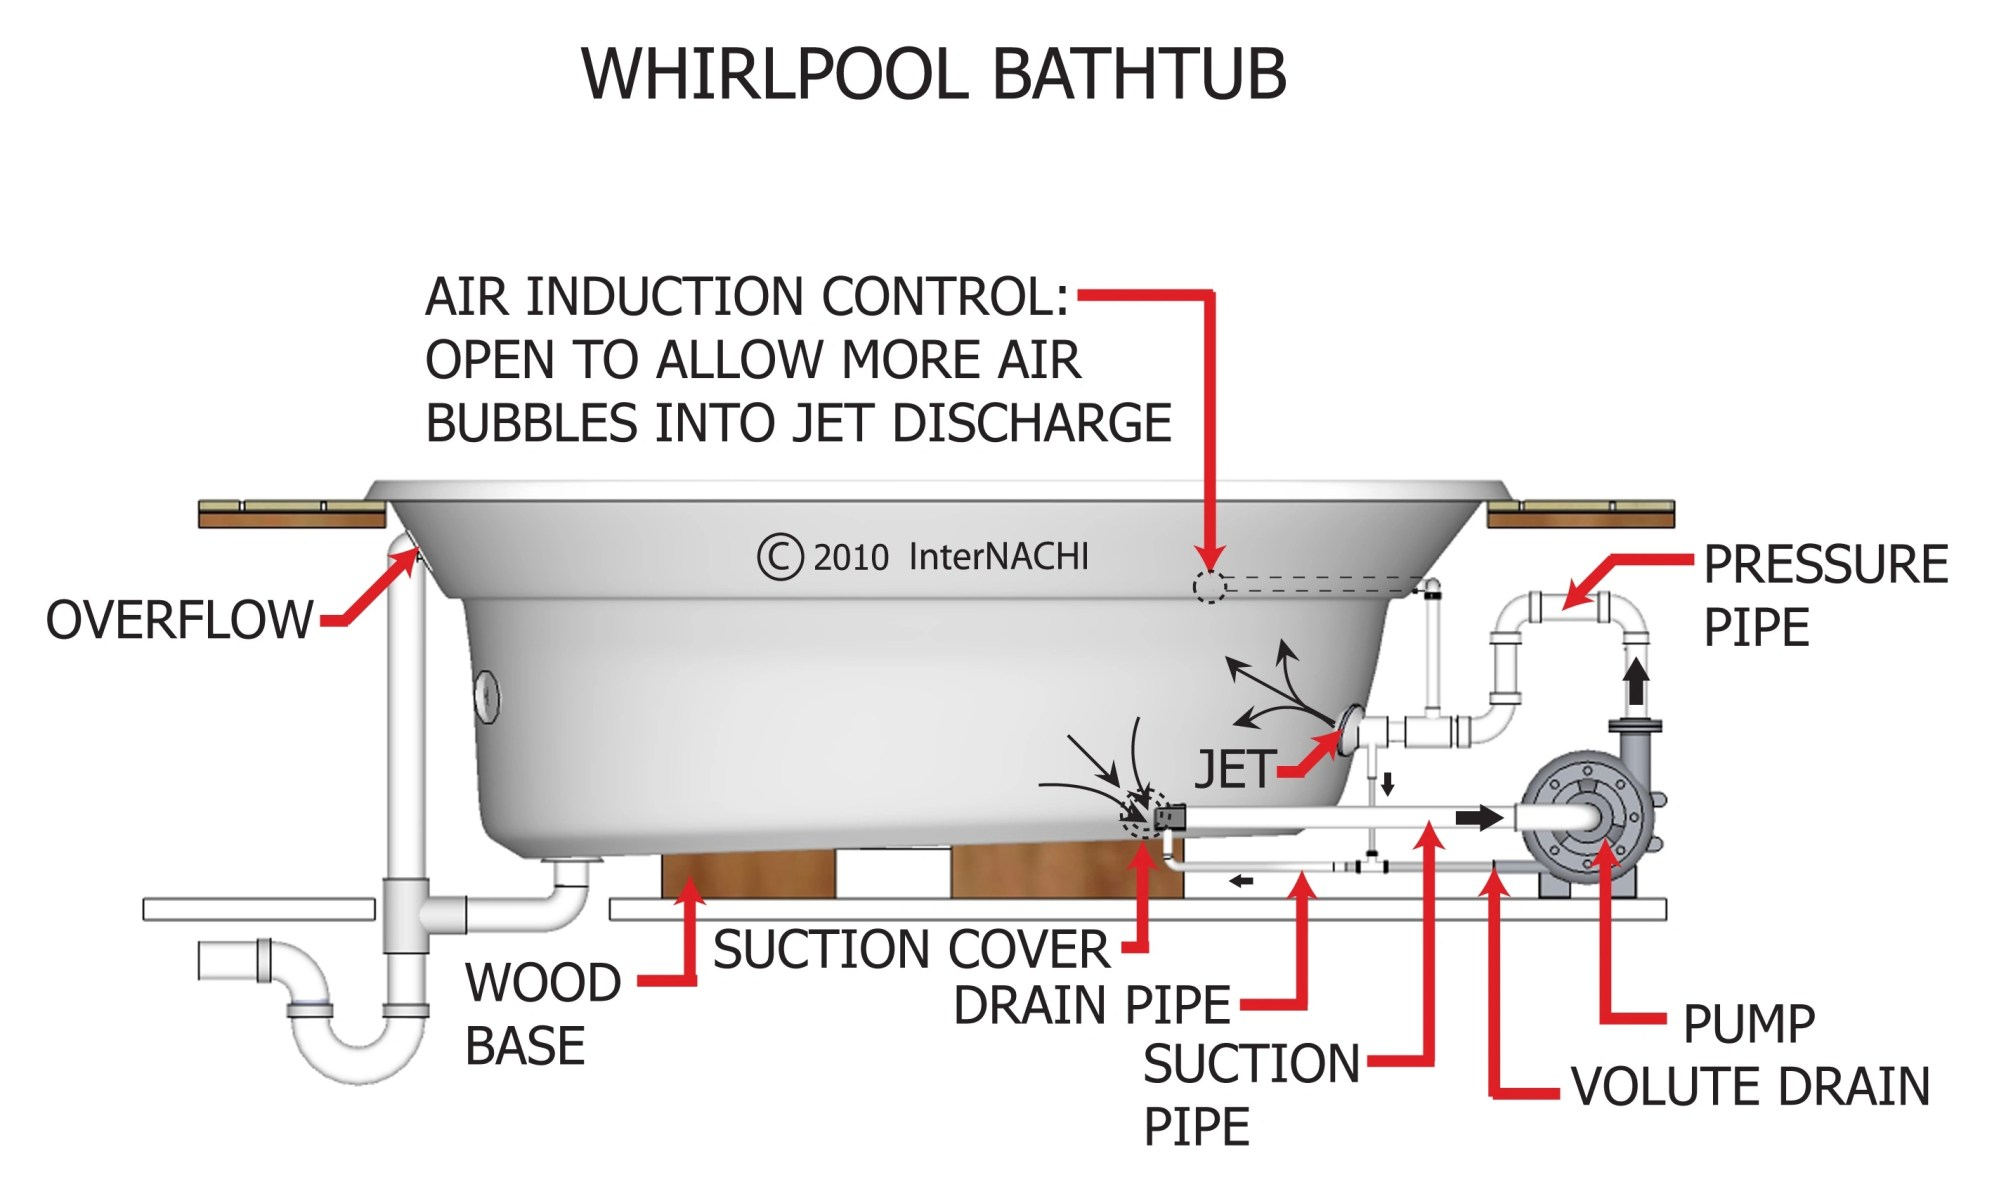 hight resolution of jacuzzi piping diagram schematic diagram database jacuzzi piping diagram data diagram schematic diagram for spa tub